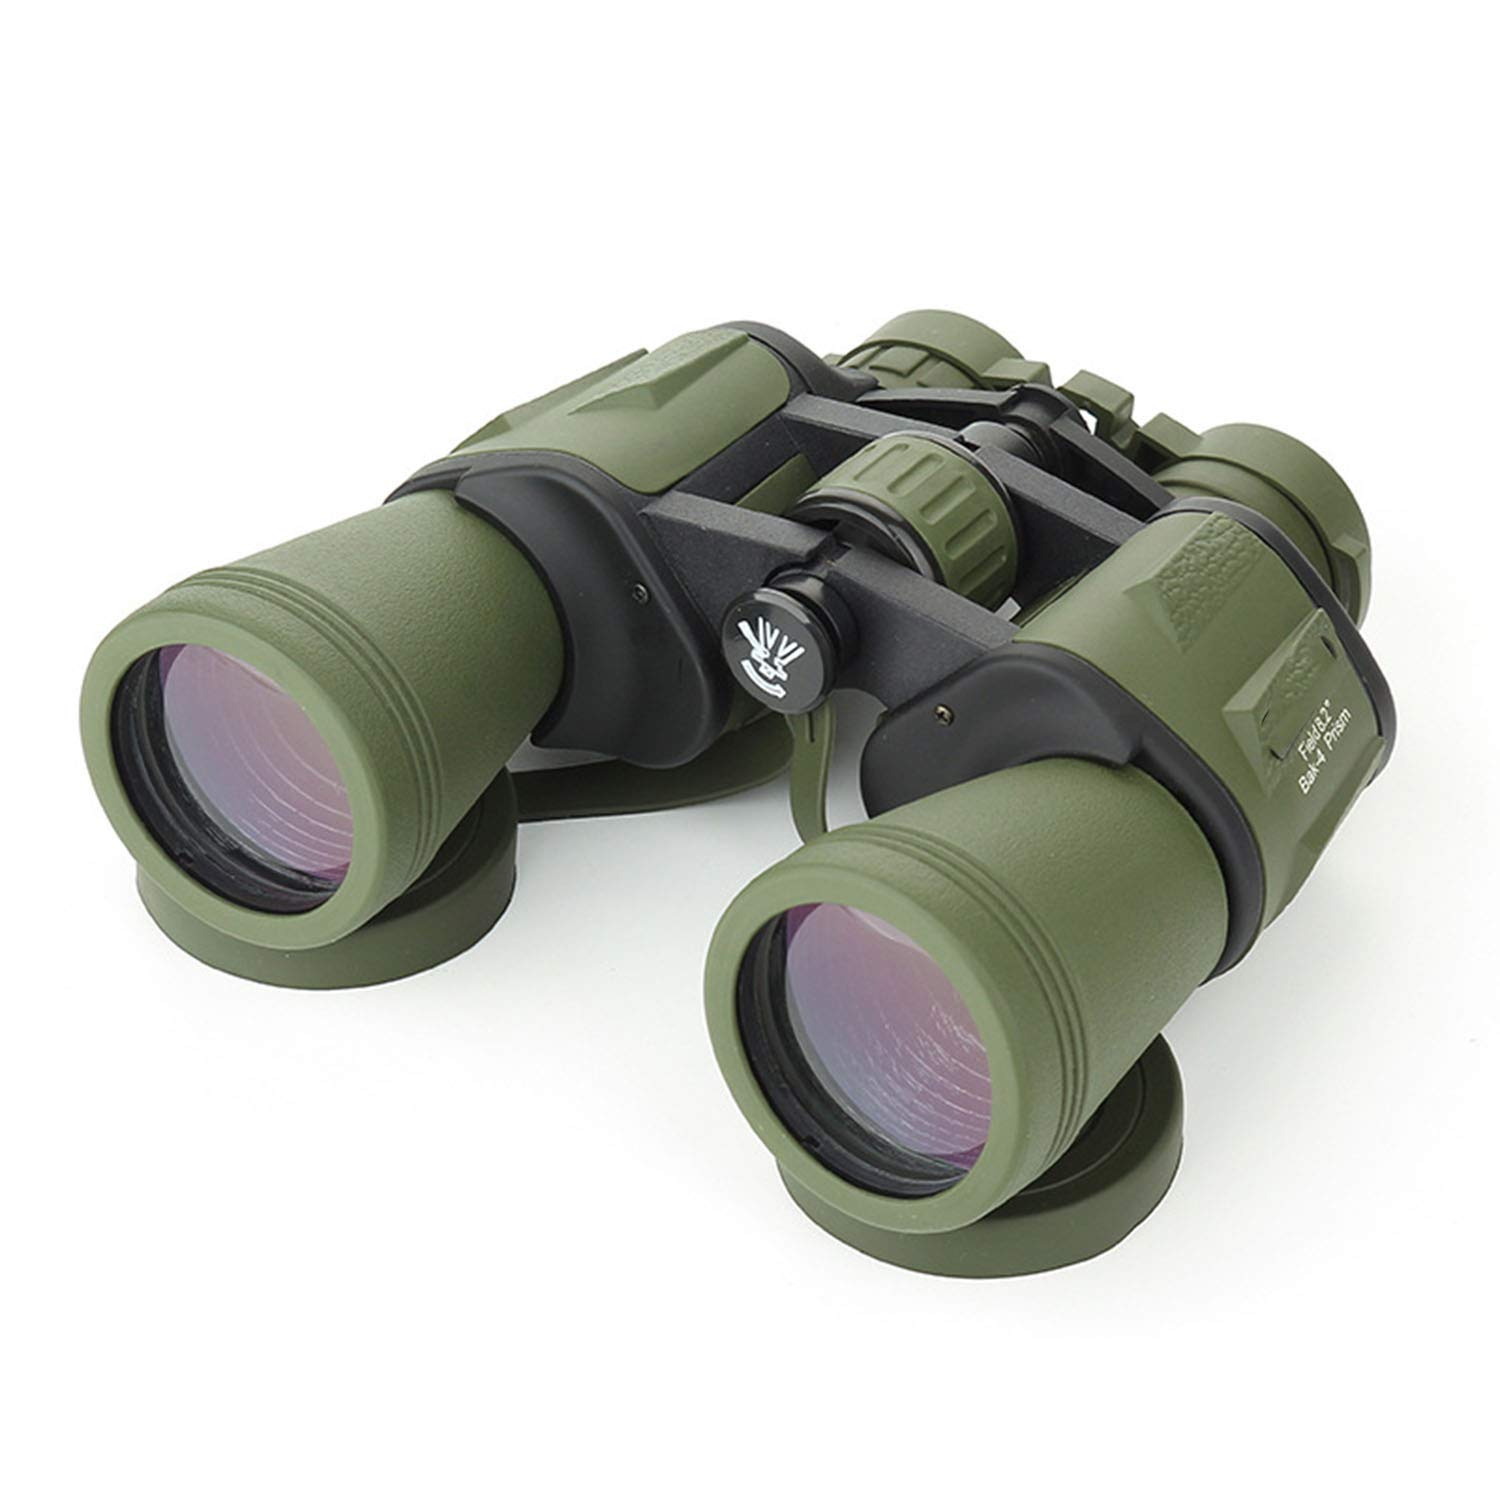 YAMADIE 20X50 High-Definition Telescope Outdoor Travel Concert Large Eyepiece Central Focus Green by YAMADIE